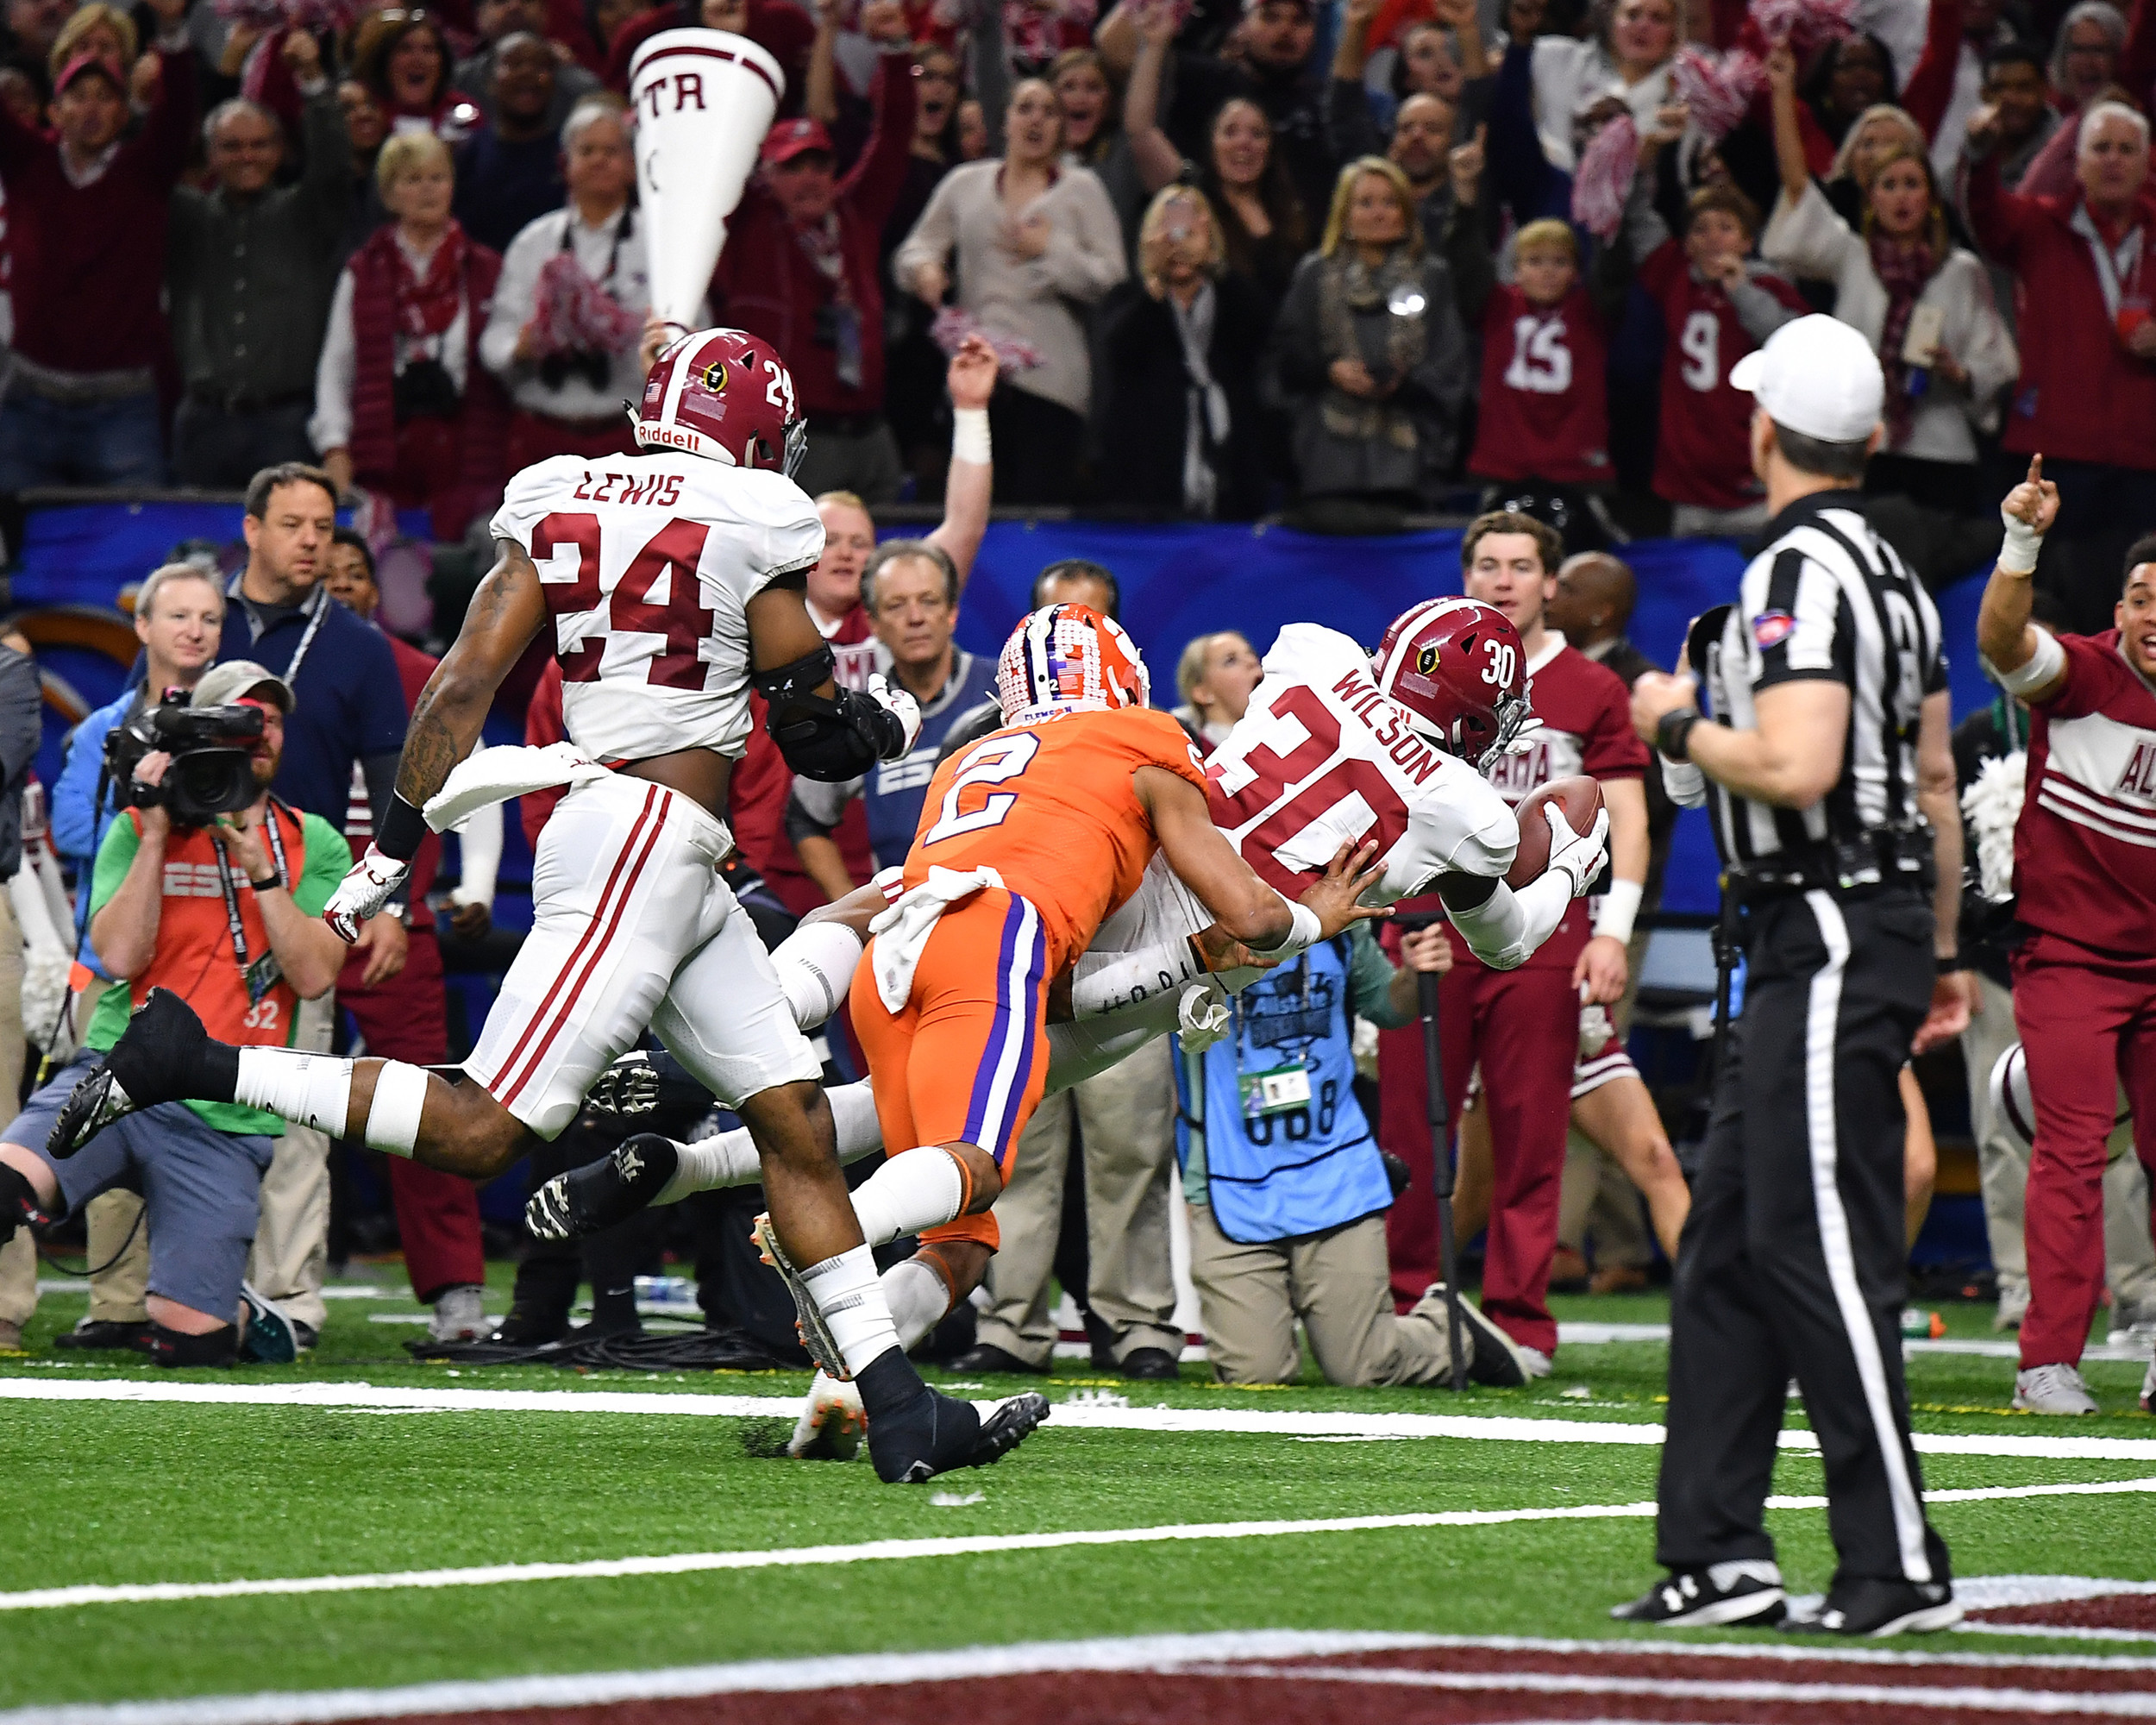 Alabama Crimson Tide linebacker Mack Wilson (30) intercepts a pass and runs it in for a touchdown in the second half of the 2018 AllState Sugar Bowl on Jan. 1, 2018, at the Mercedes-Benz SuperDome in New Orleans, La. Alabama won the game 24-6. (Photo by Lee Walls)